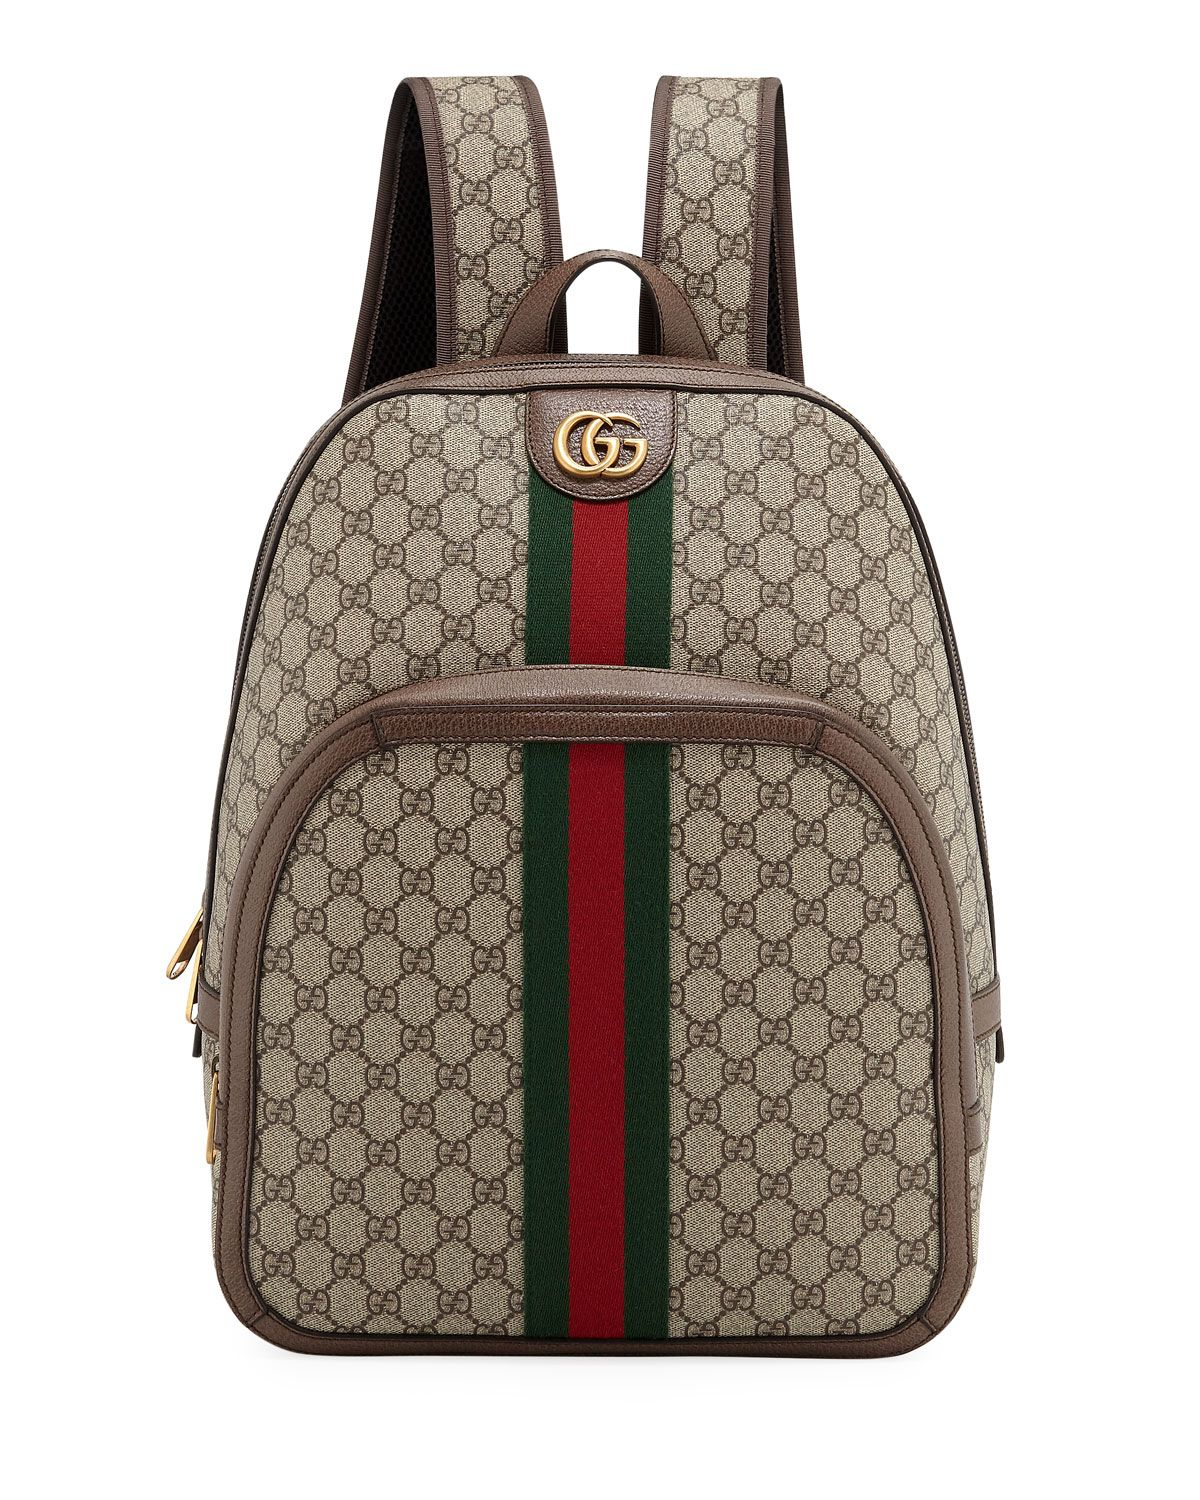 f91bcb5cca7 GUCCI MEN S GG SUPREME MEDIUM CANVAS BACKPACK.  gucci  bags  leather   canvas  backpacks